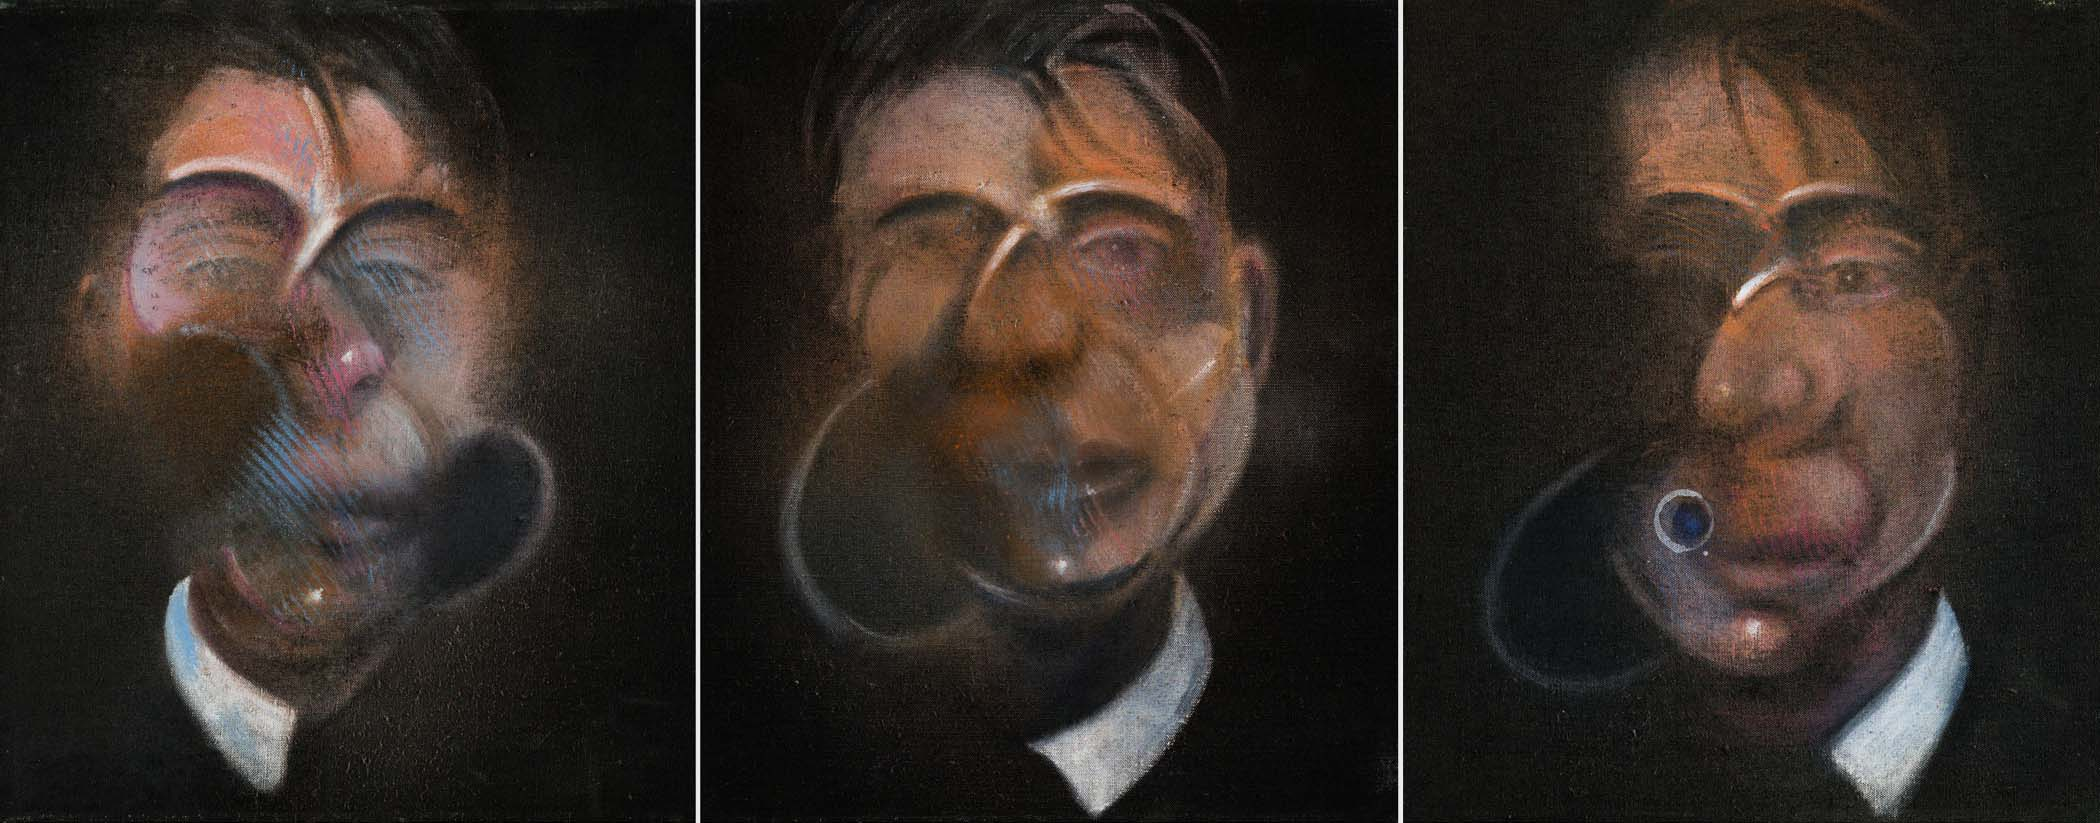 Francis Bacon: Three Studies for a Self-Portrait (1980)